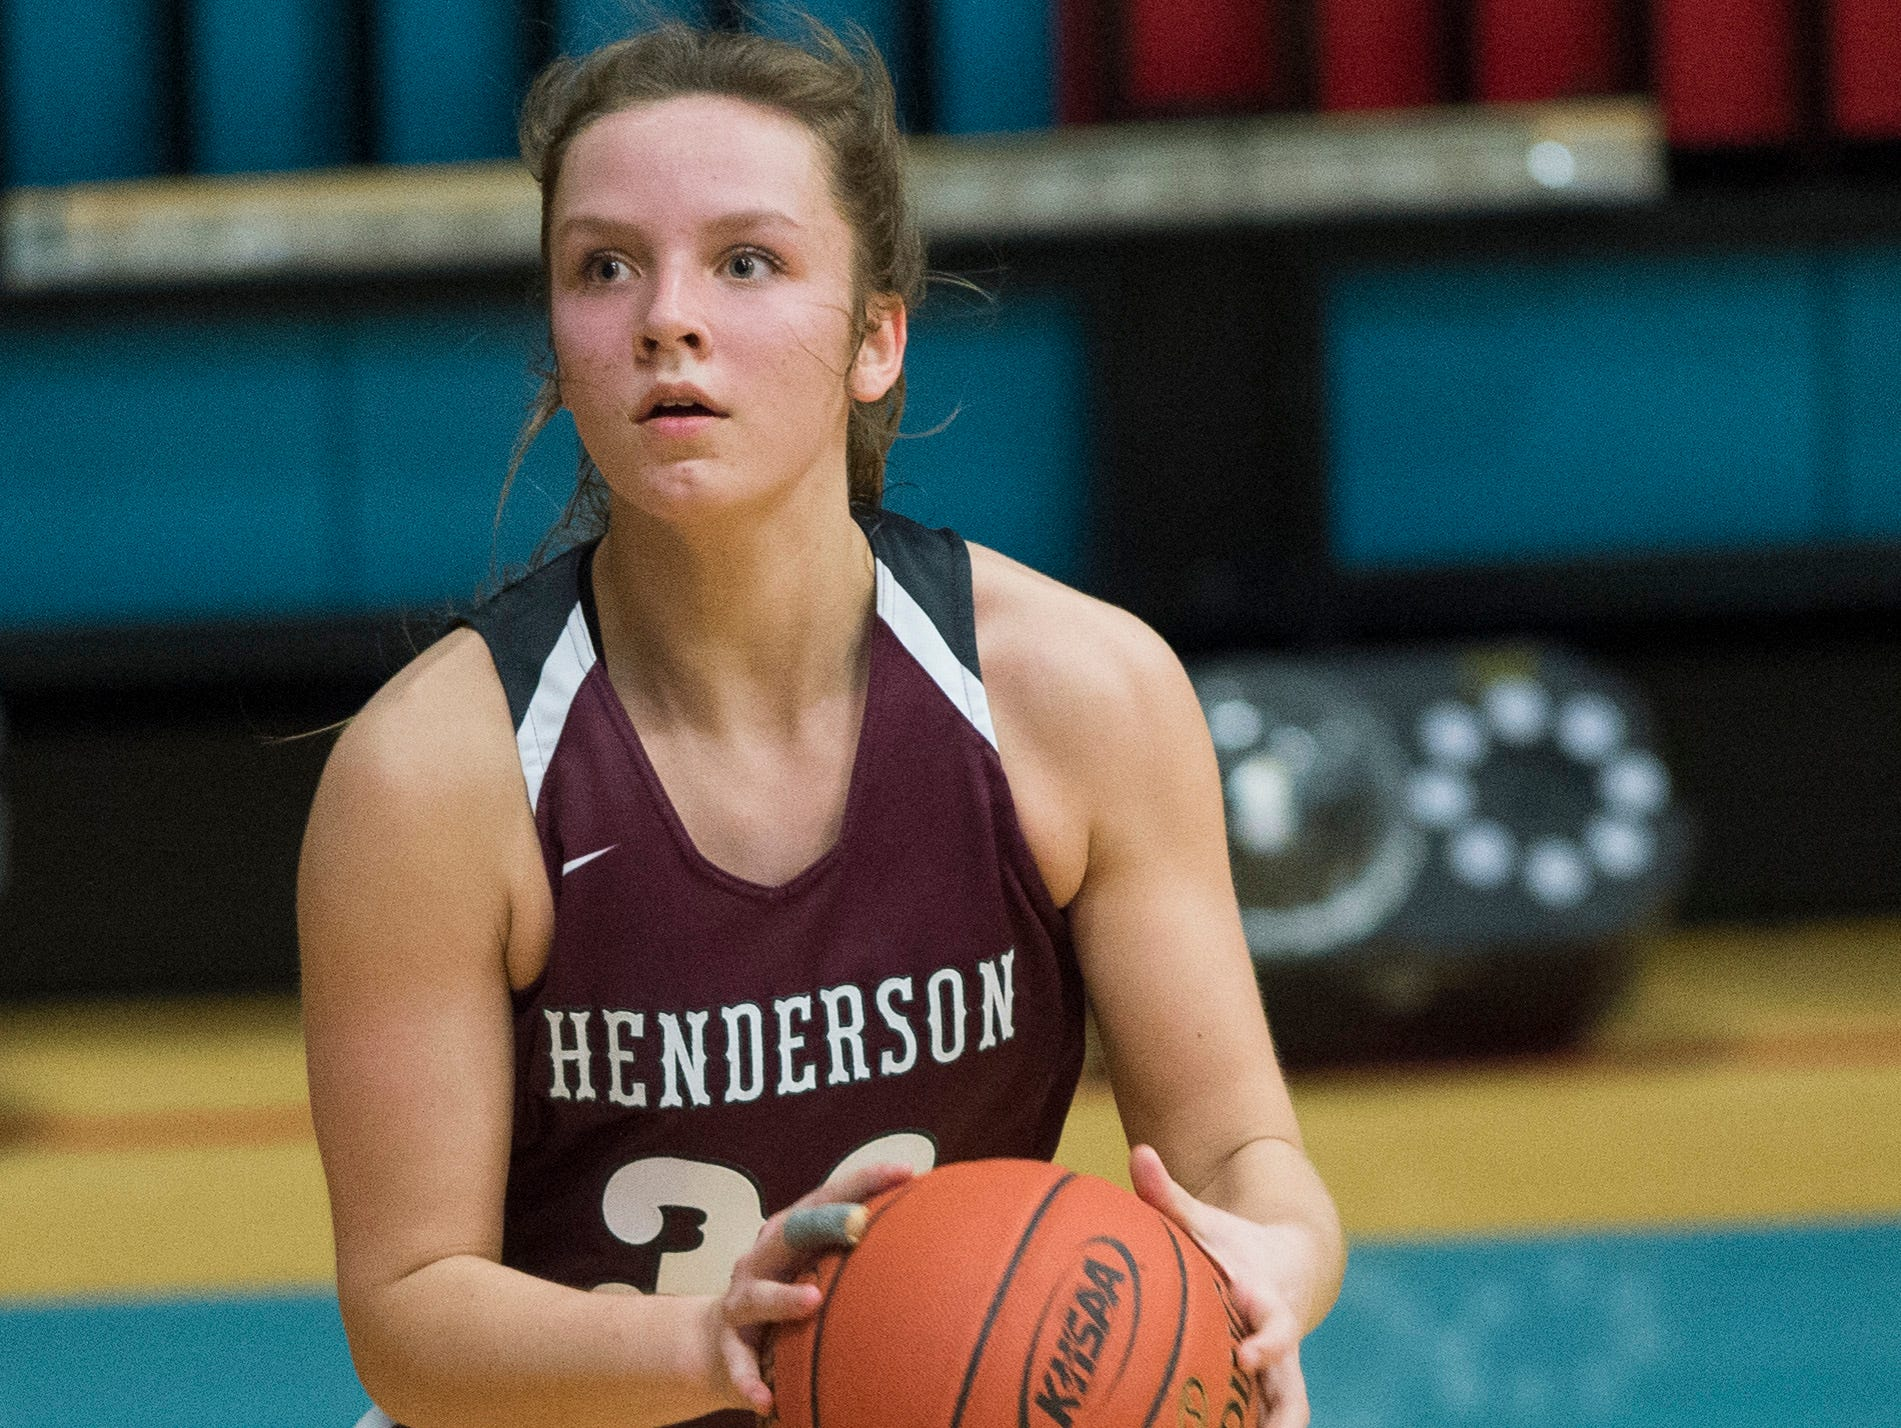 Henderson County's Emilee Hope (30) takes a shot during the 2019 Sixth District championship game against the Webster County Lady Trojans at Union County High School Thursday, Feb. 21, 2019.